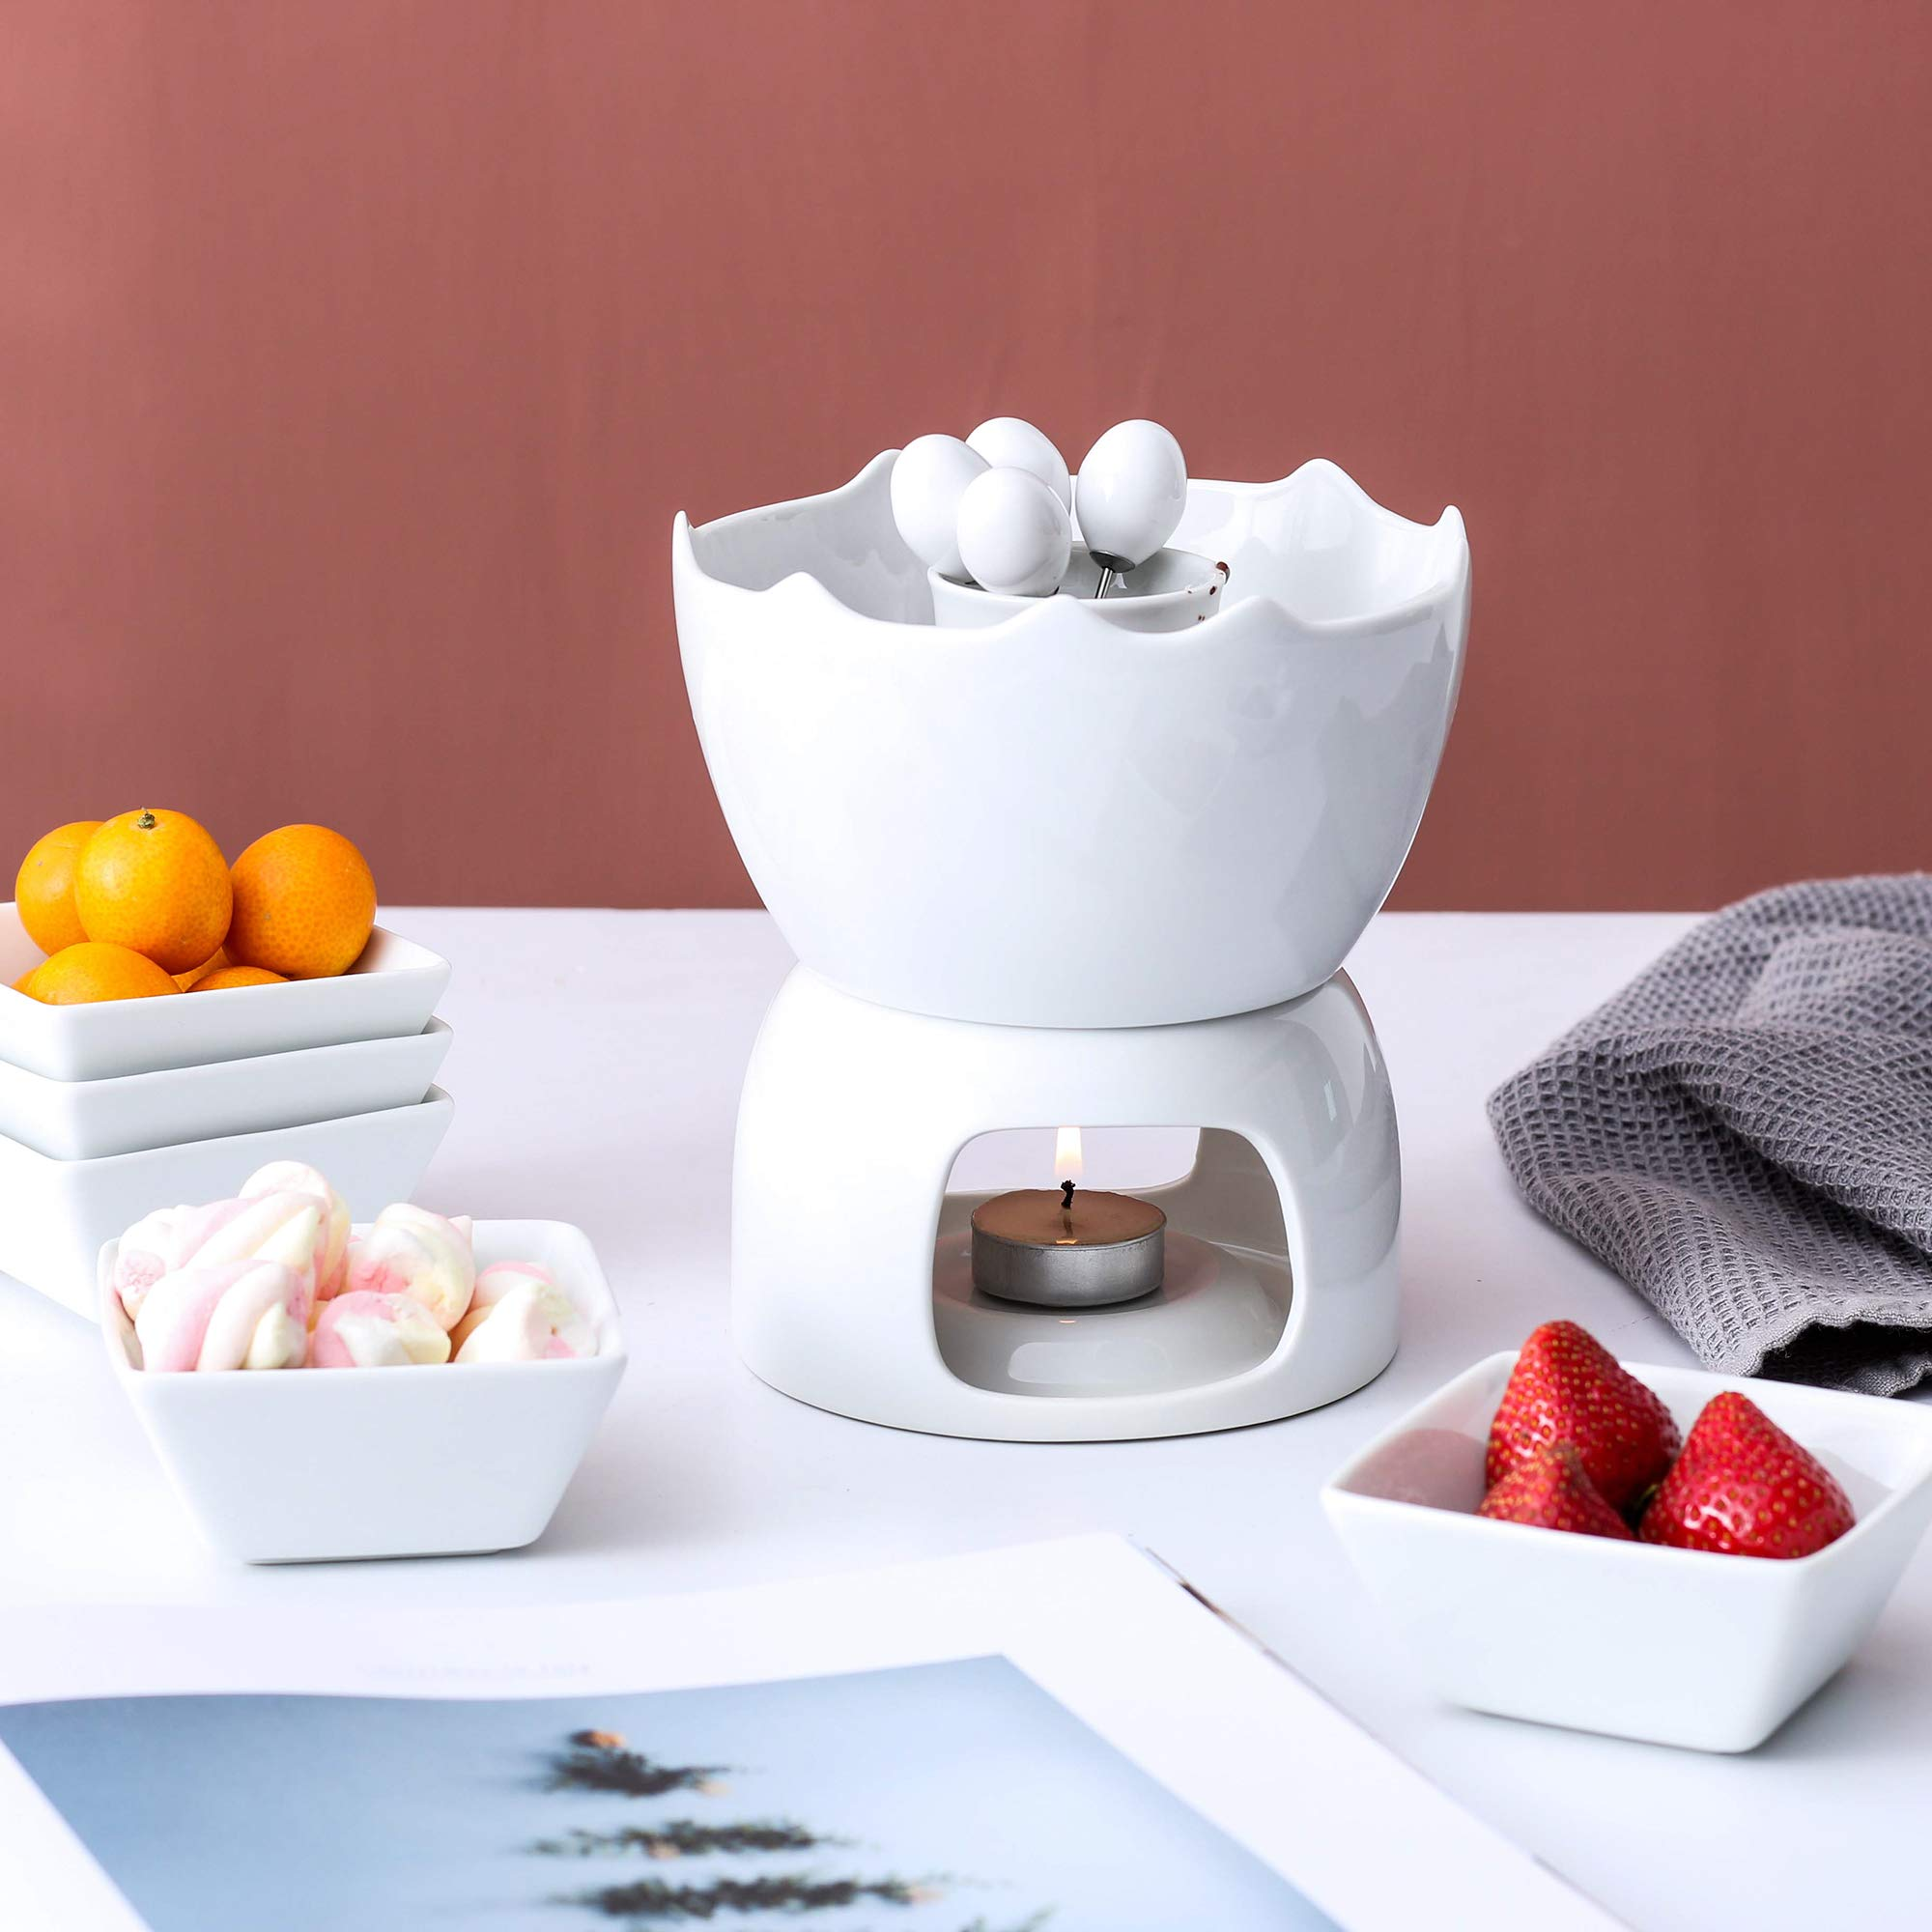 Malacasa Fondue Pot Set Two-layer Porcelain Tealight Chocolate Fondue with Dipping Bowls and Forks for 6, Cheese Fondue or Butter Fondue Set, White by Malacasa (Image #10)